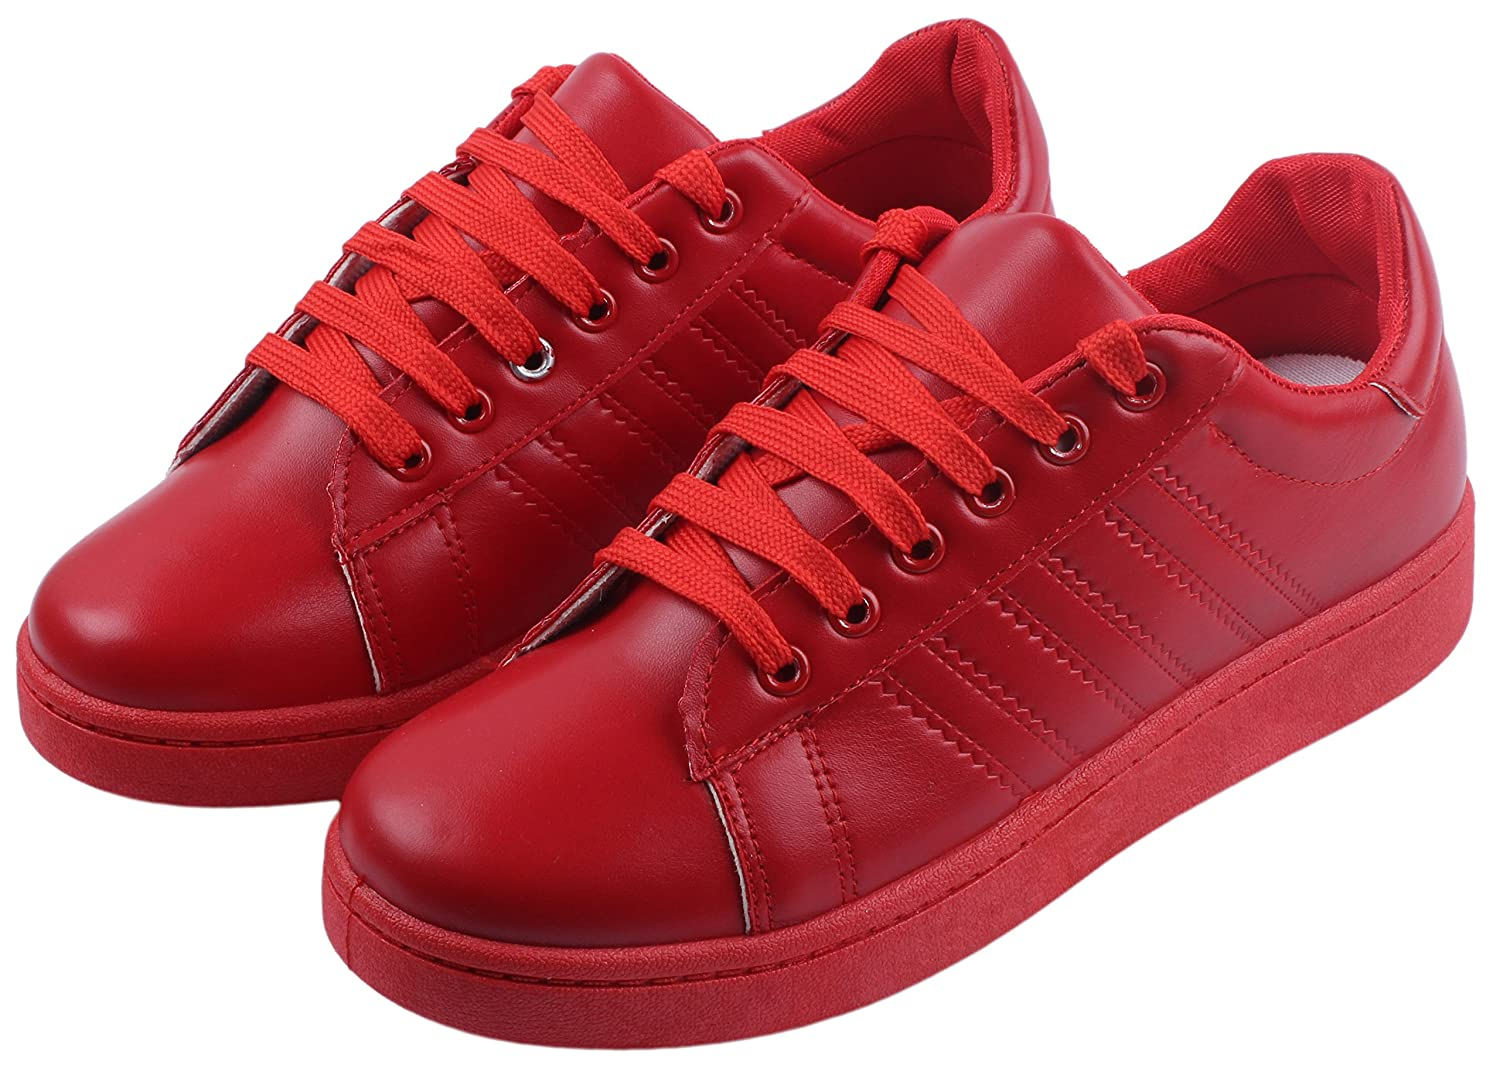 Sports Shoes, Red Superstar Shoes